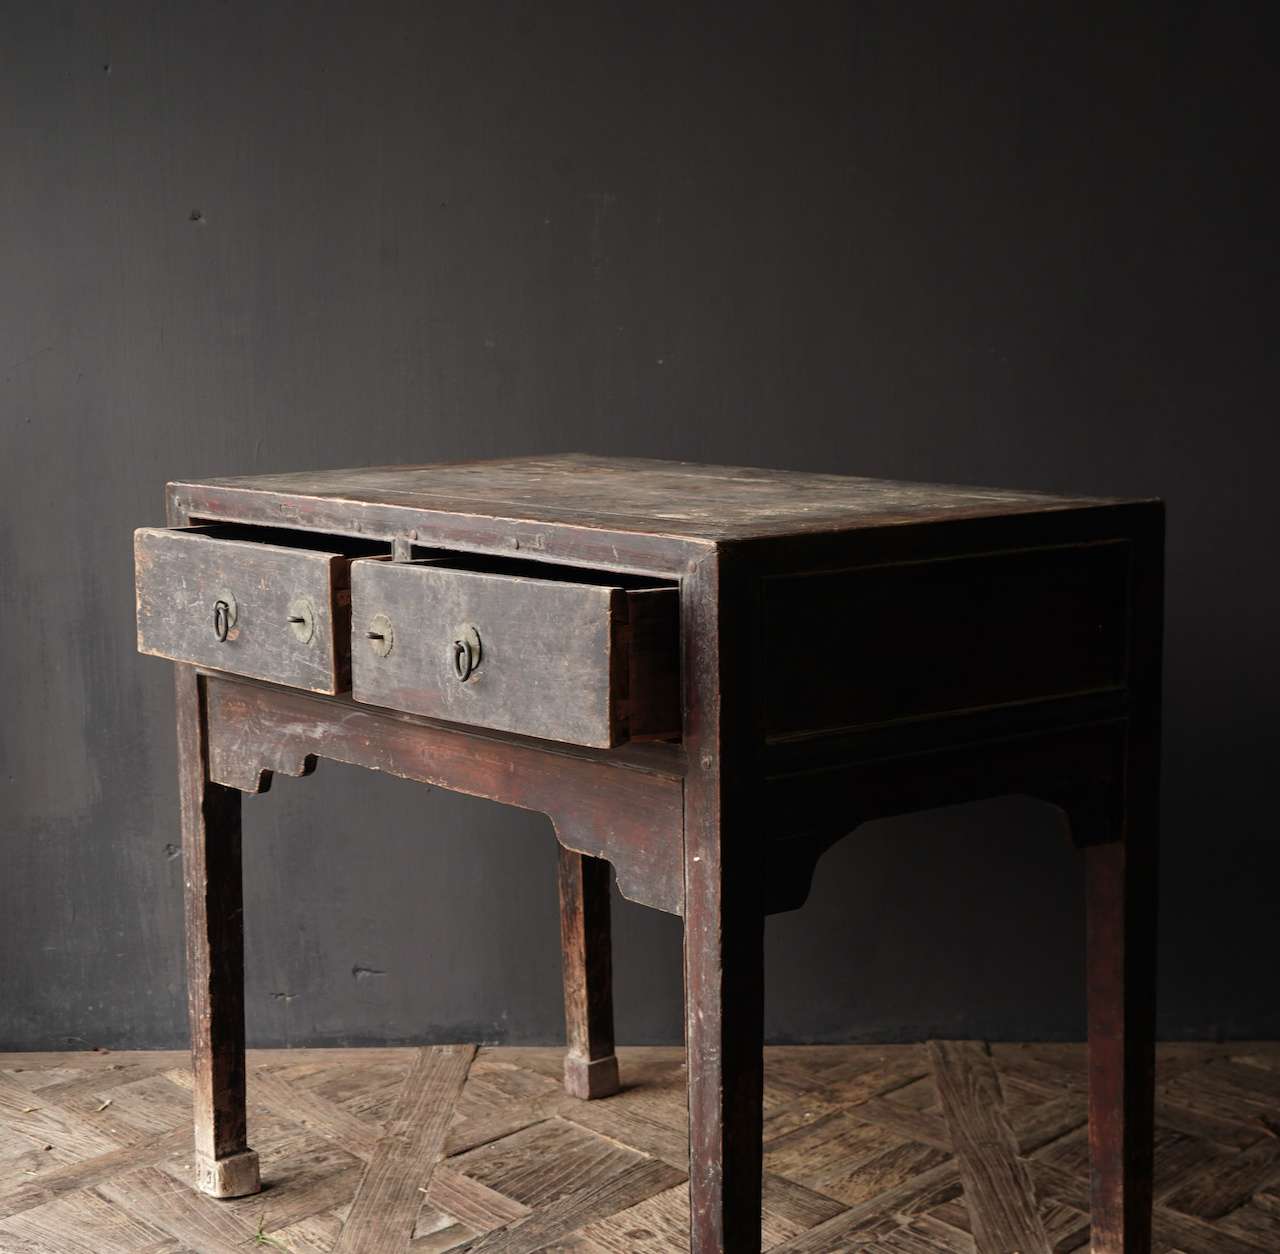 Authentic Unique old wall table / side table with drawers-8